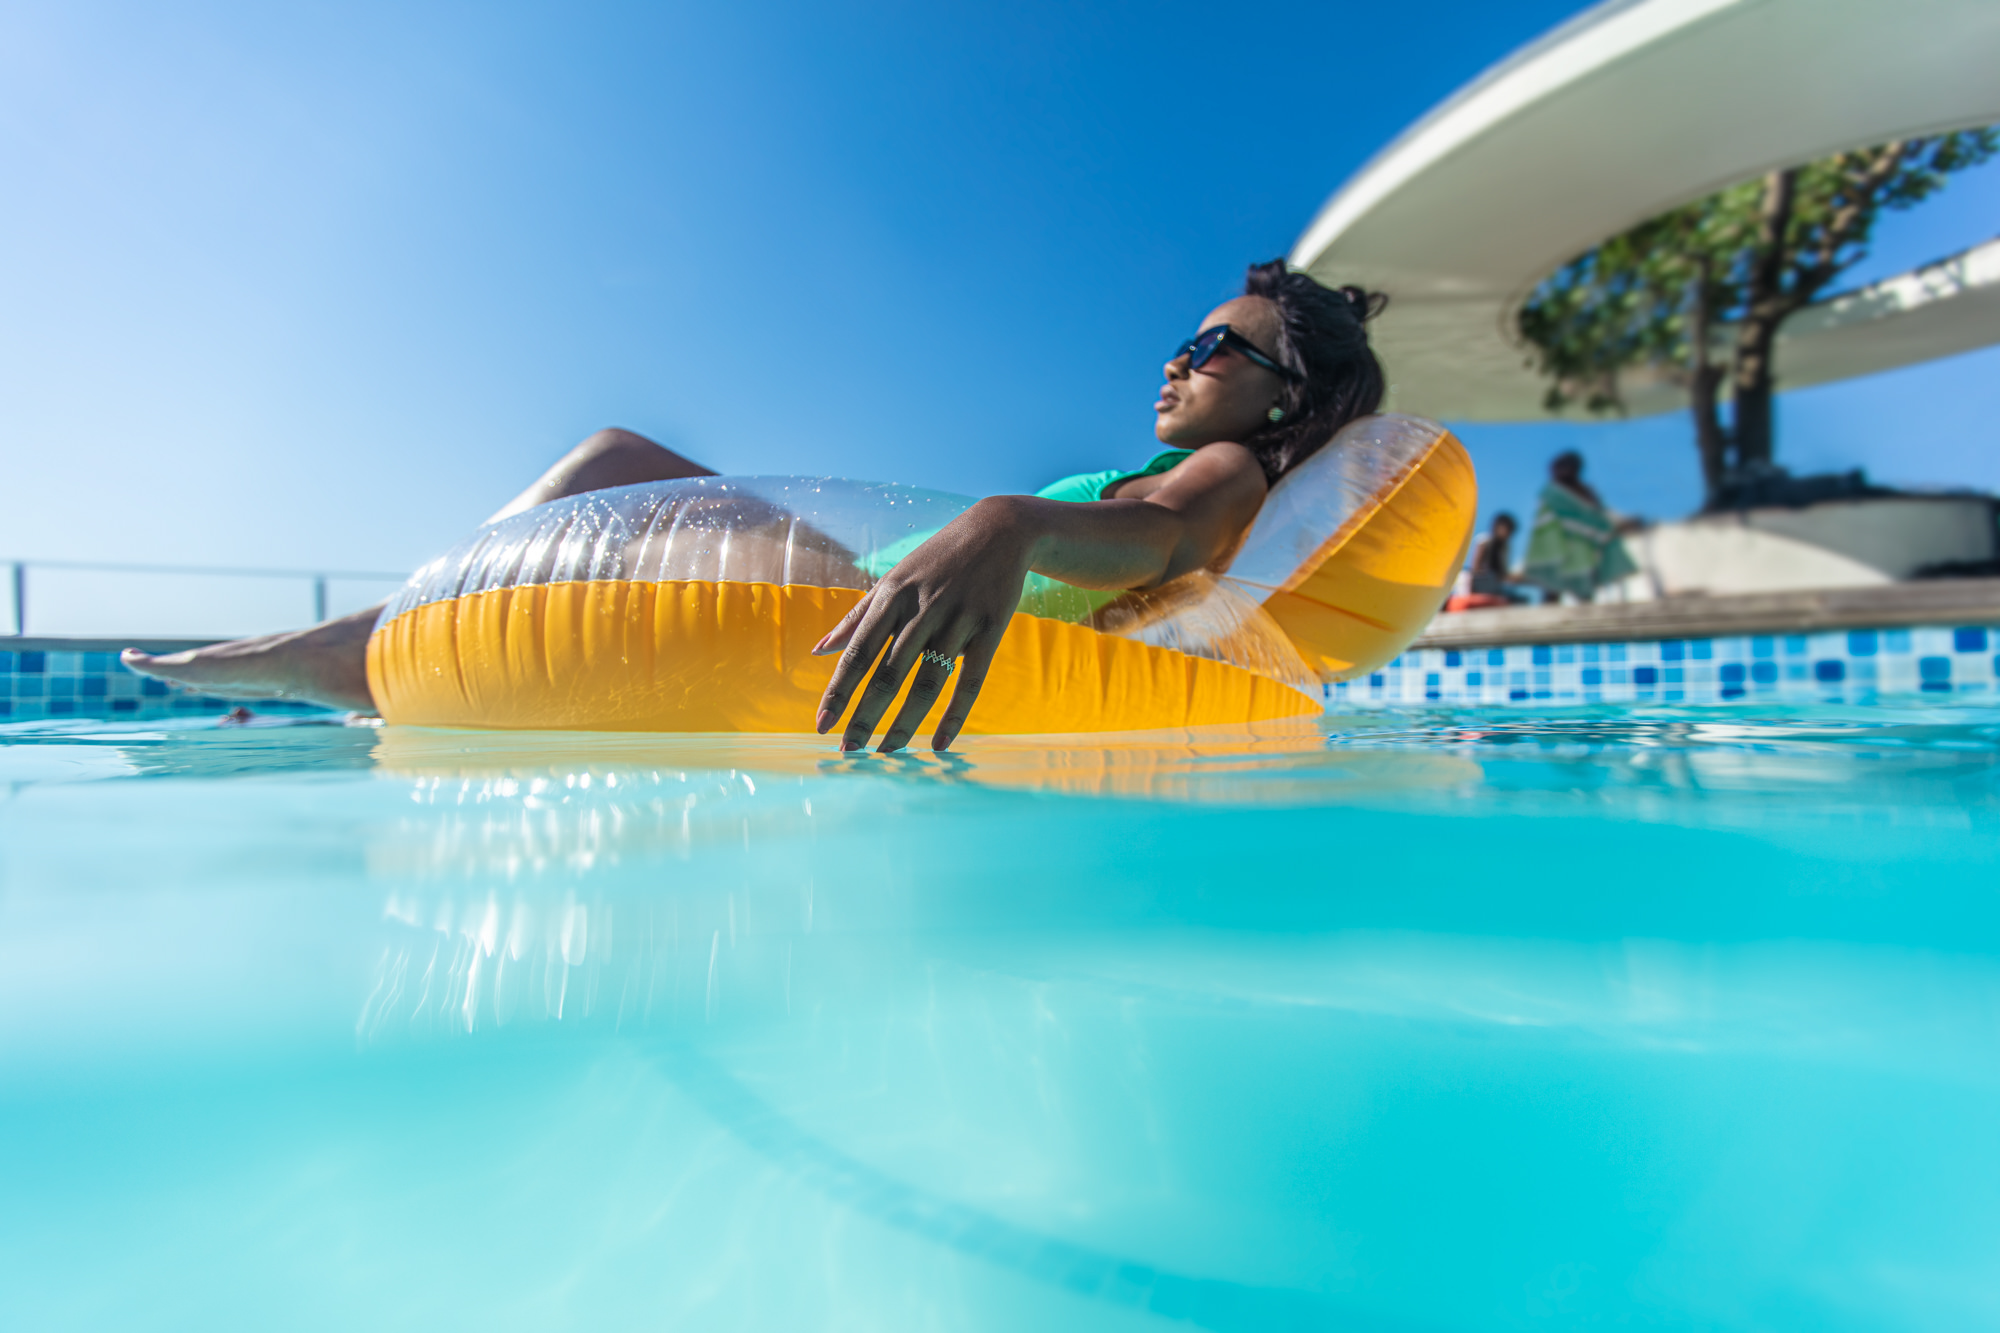 Image of woman in a pool for Tsogo Sun's Image Library & Content Library by Michelle Wastie Photography